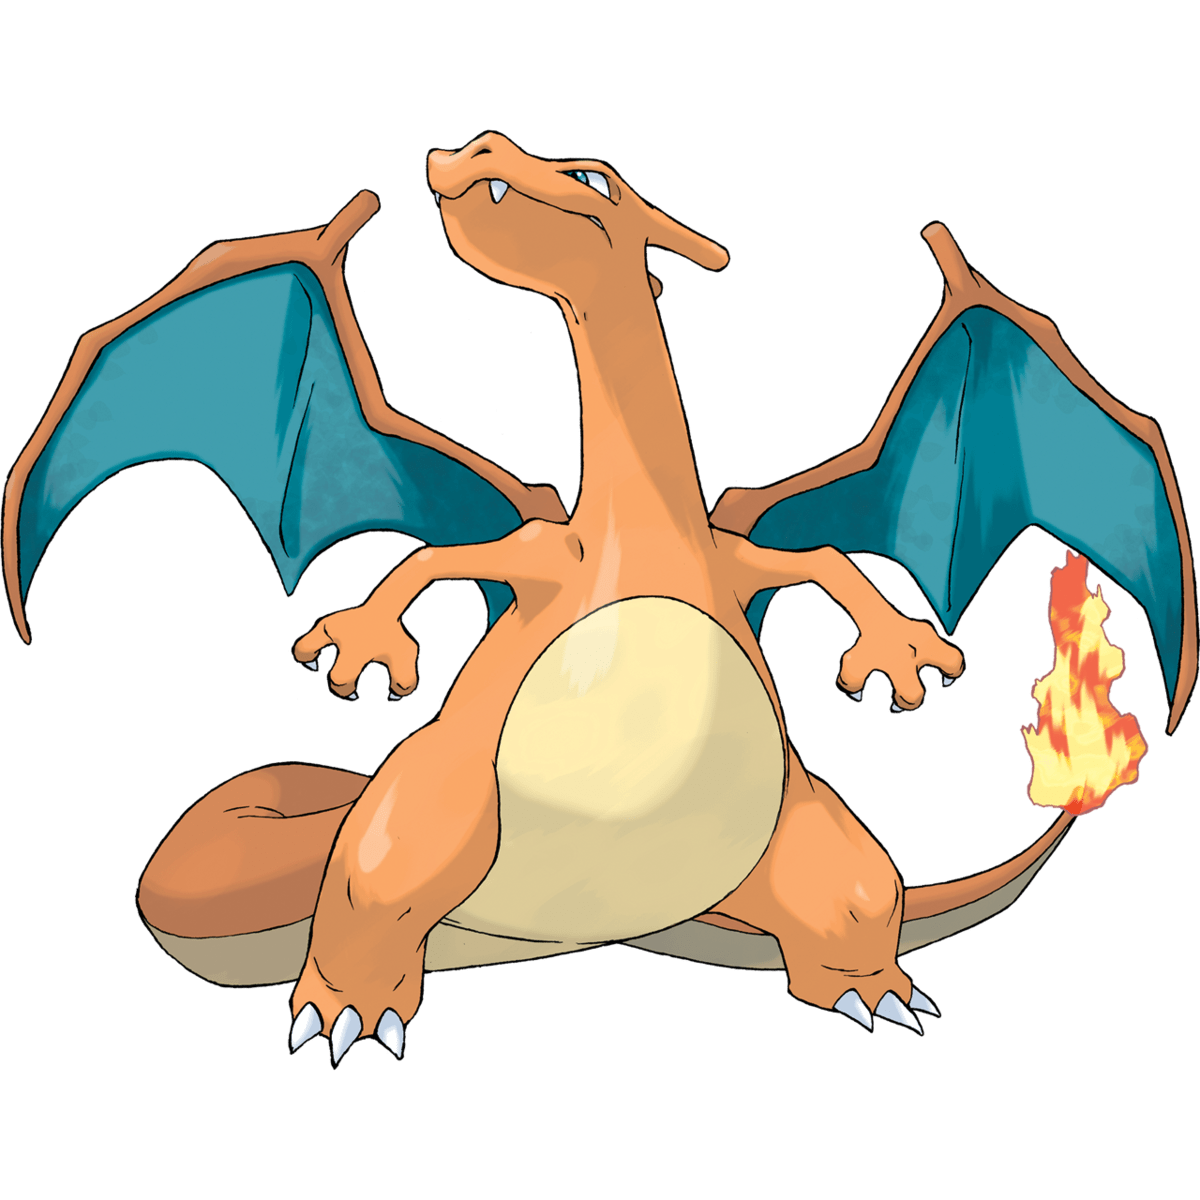 Charizard, the best Fire type and one of the best Flying type Pokemon in Pokemon Let's Go